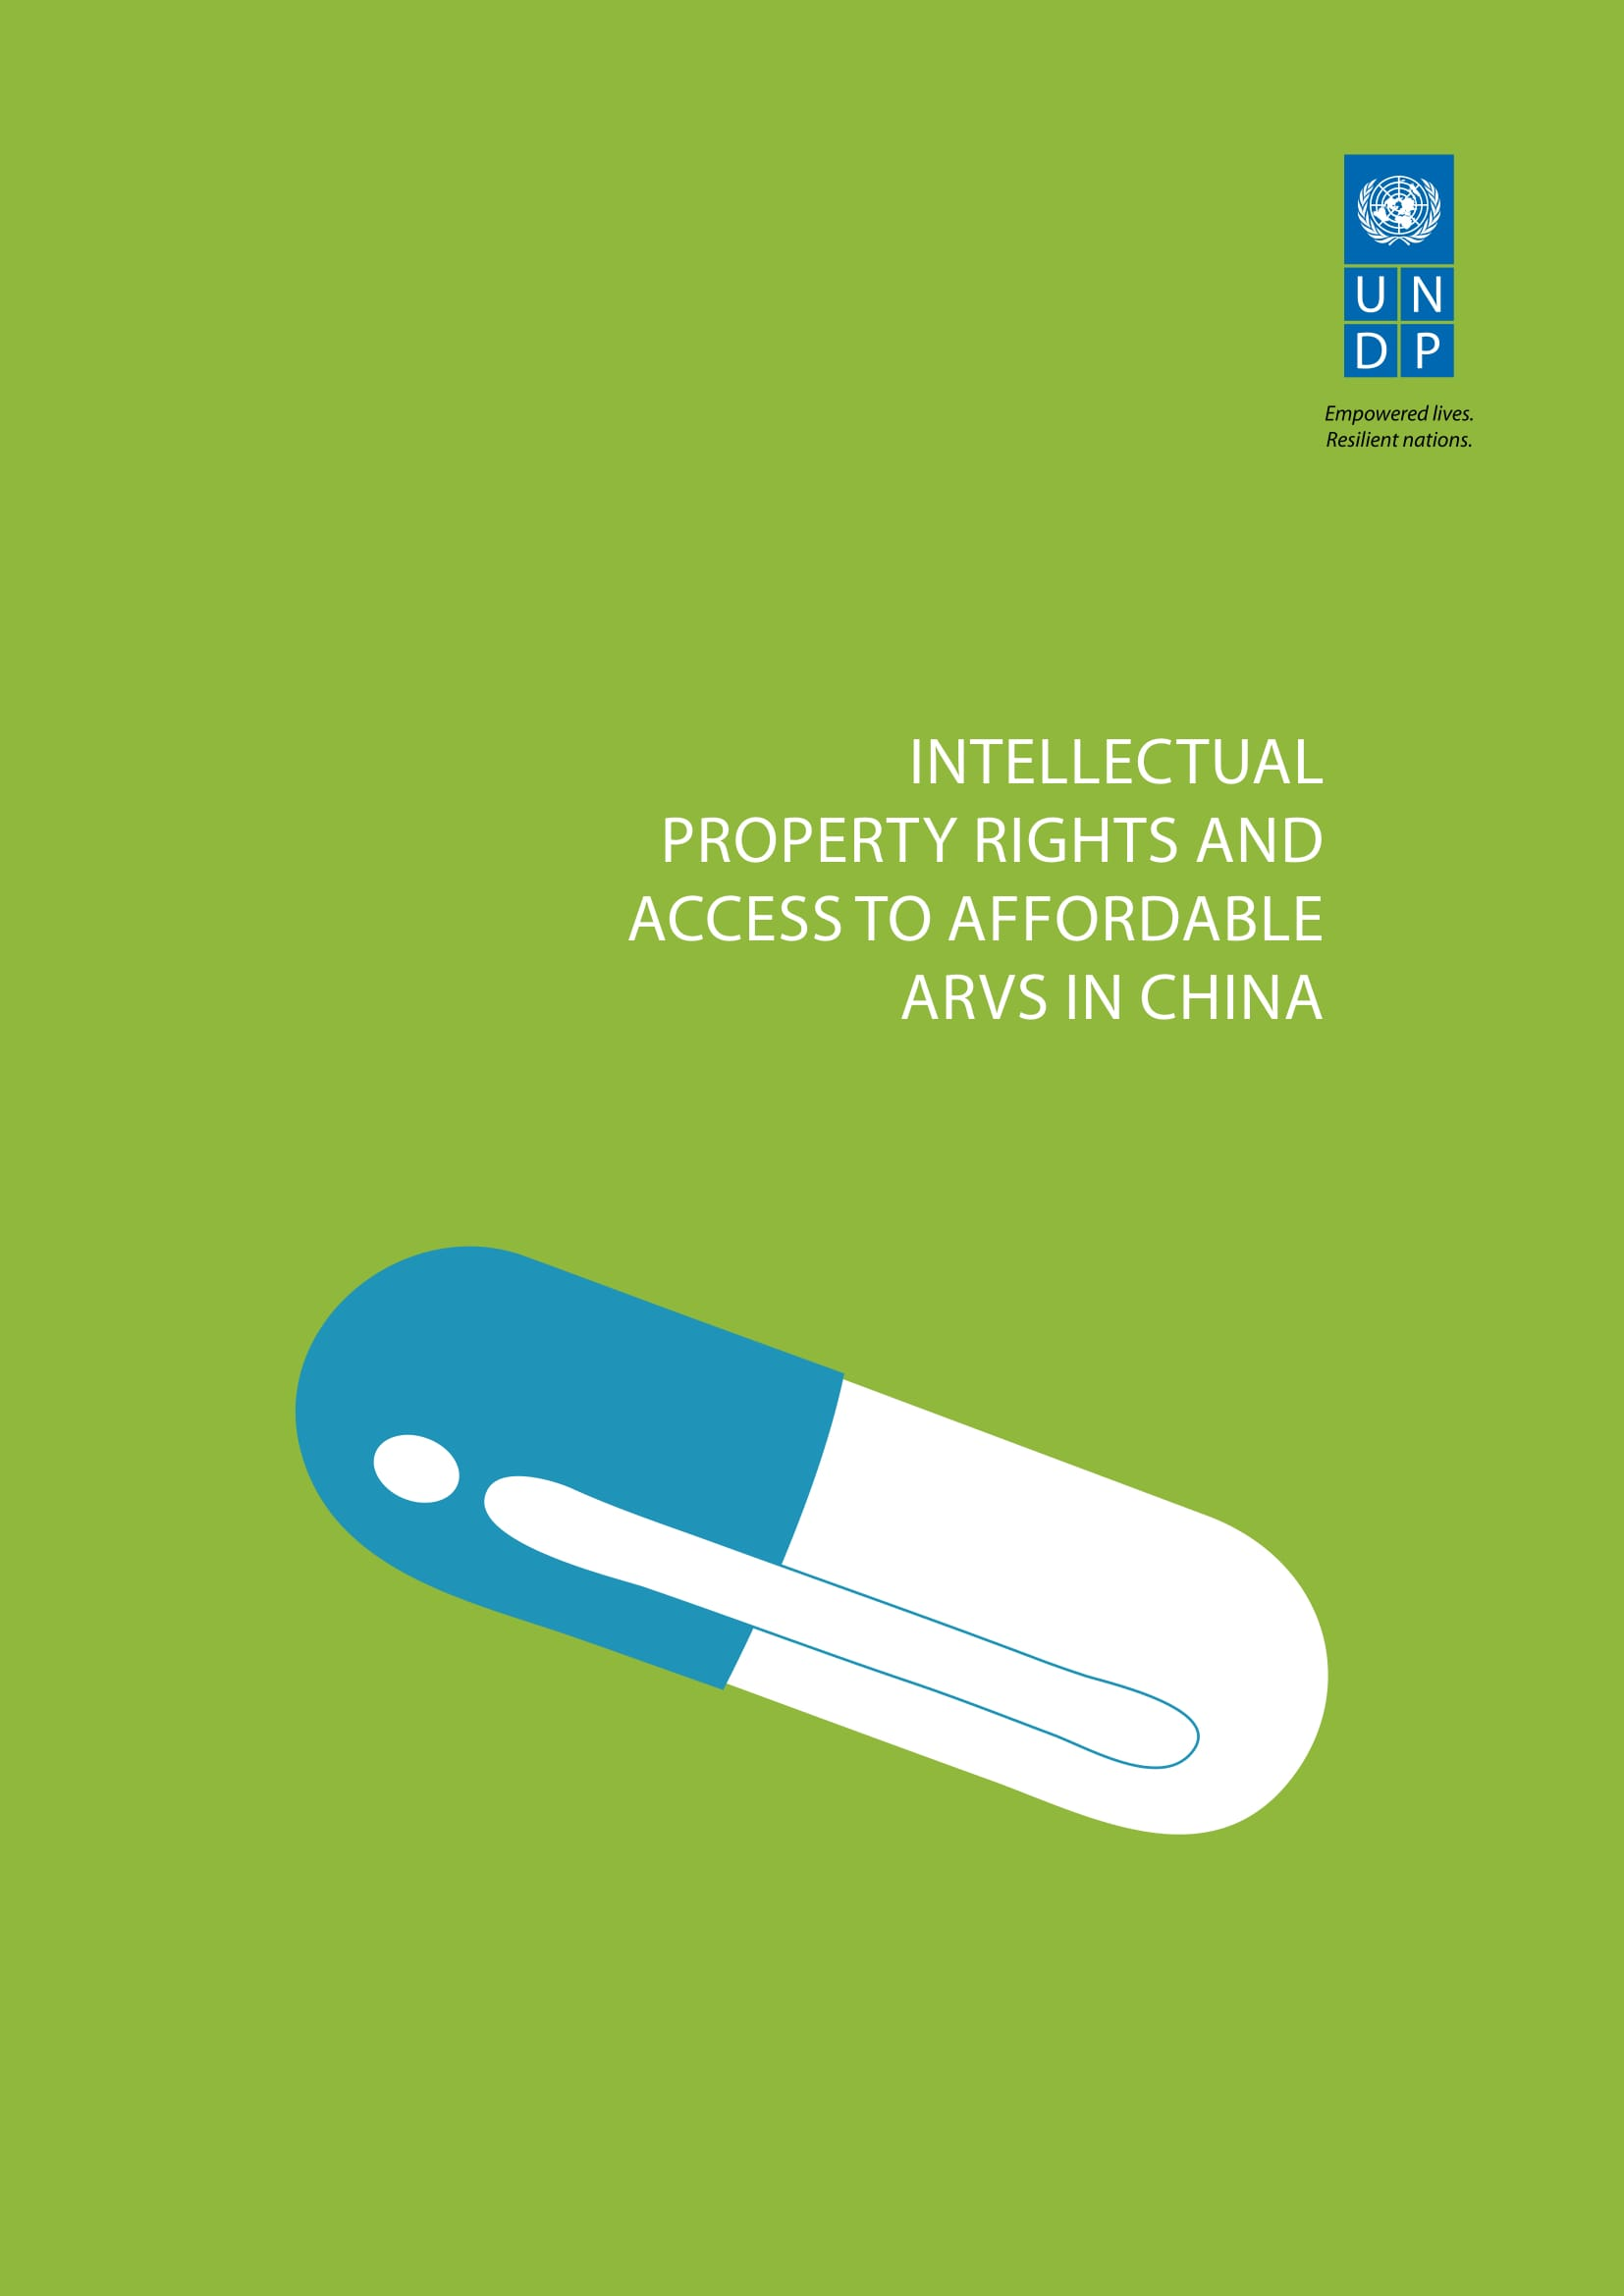 Intellectual Property Rights and Access to Affordable ARVs in China